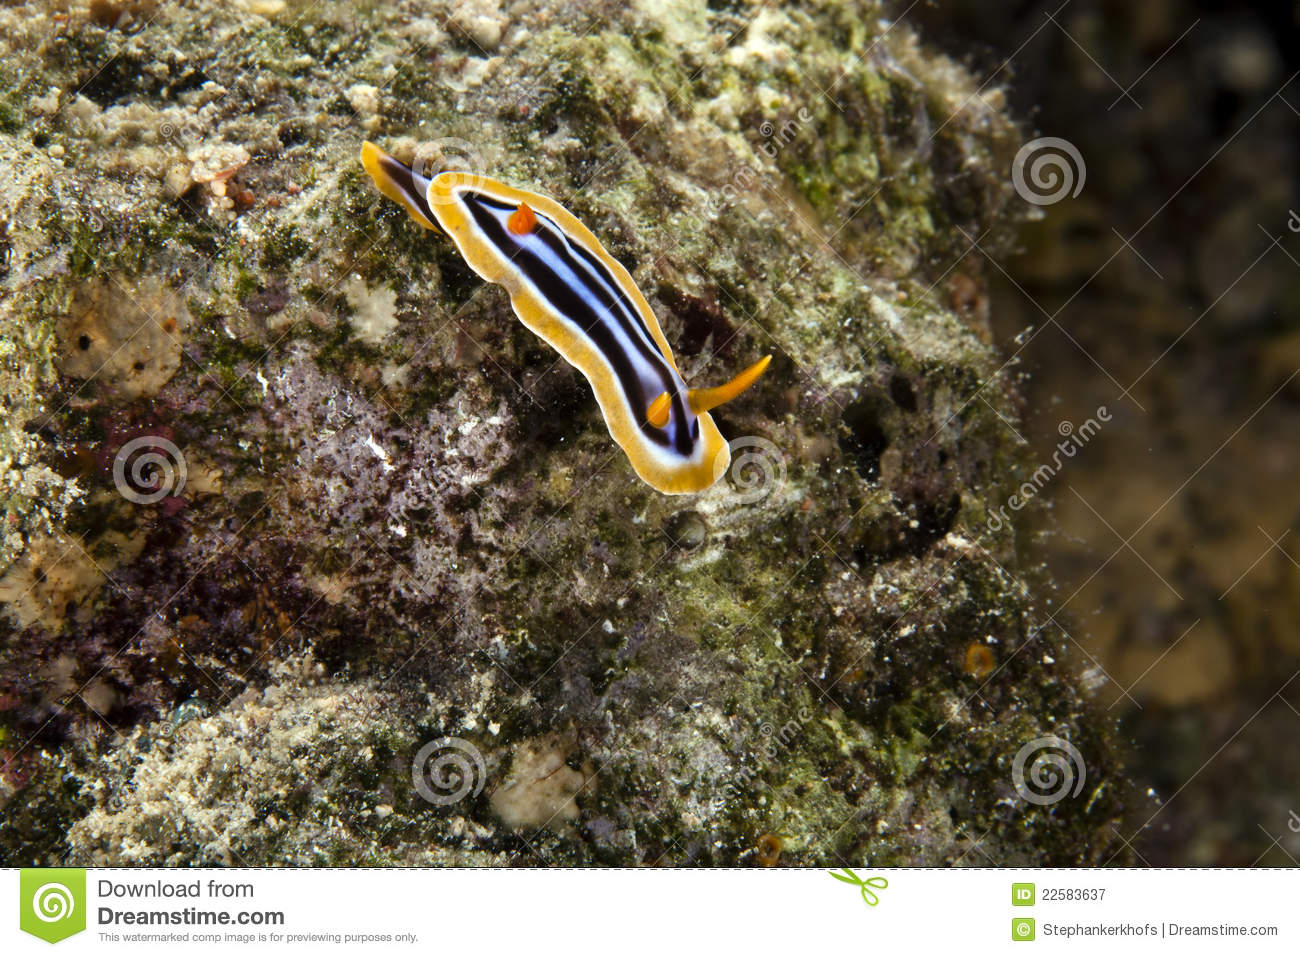 Πυτζάμα chromodorid (quadricolor chromodoris).